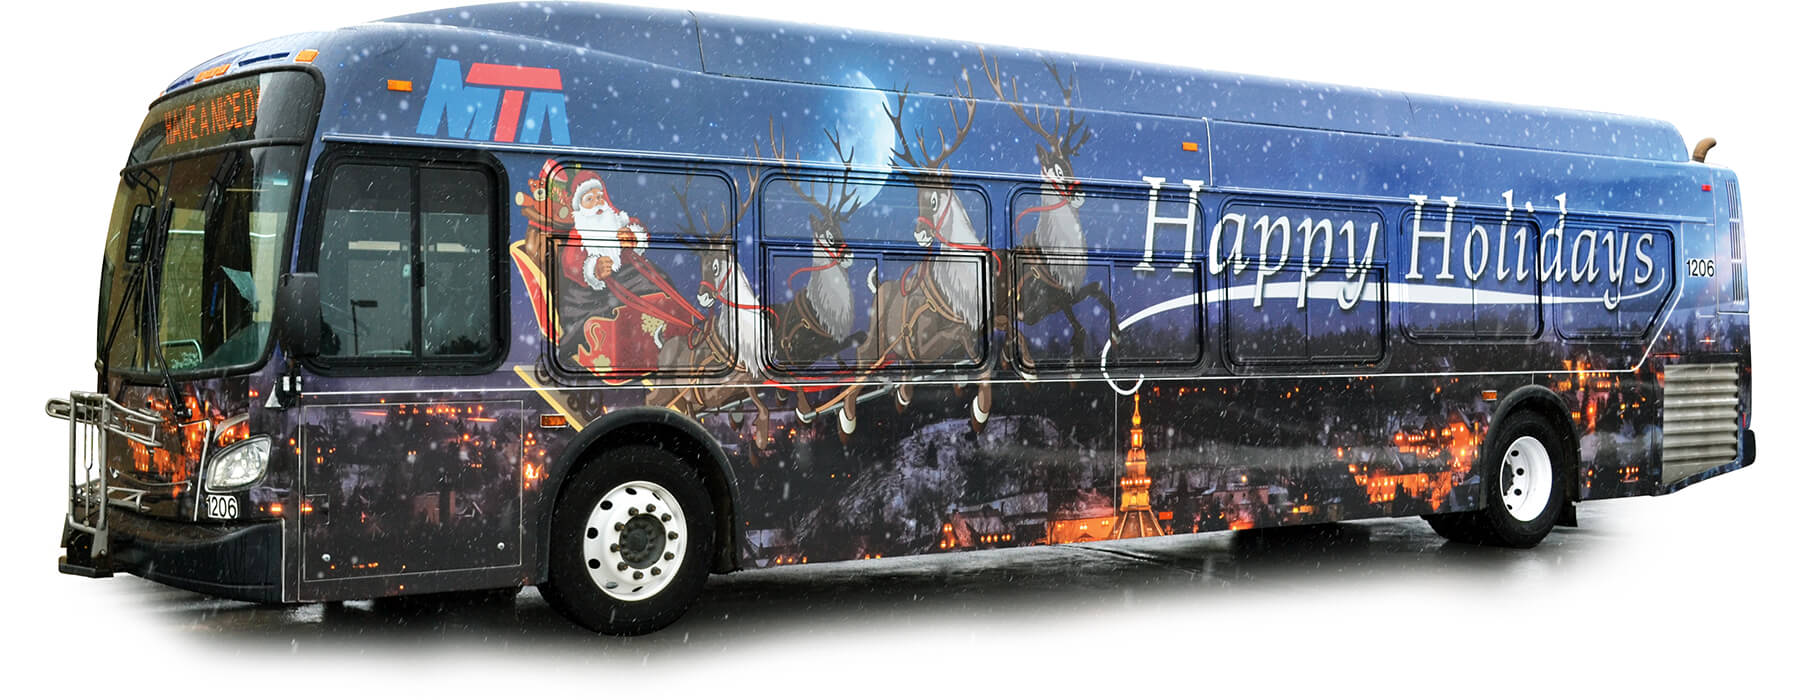 MTA Primary Route bus wrapped with holiday graphics.